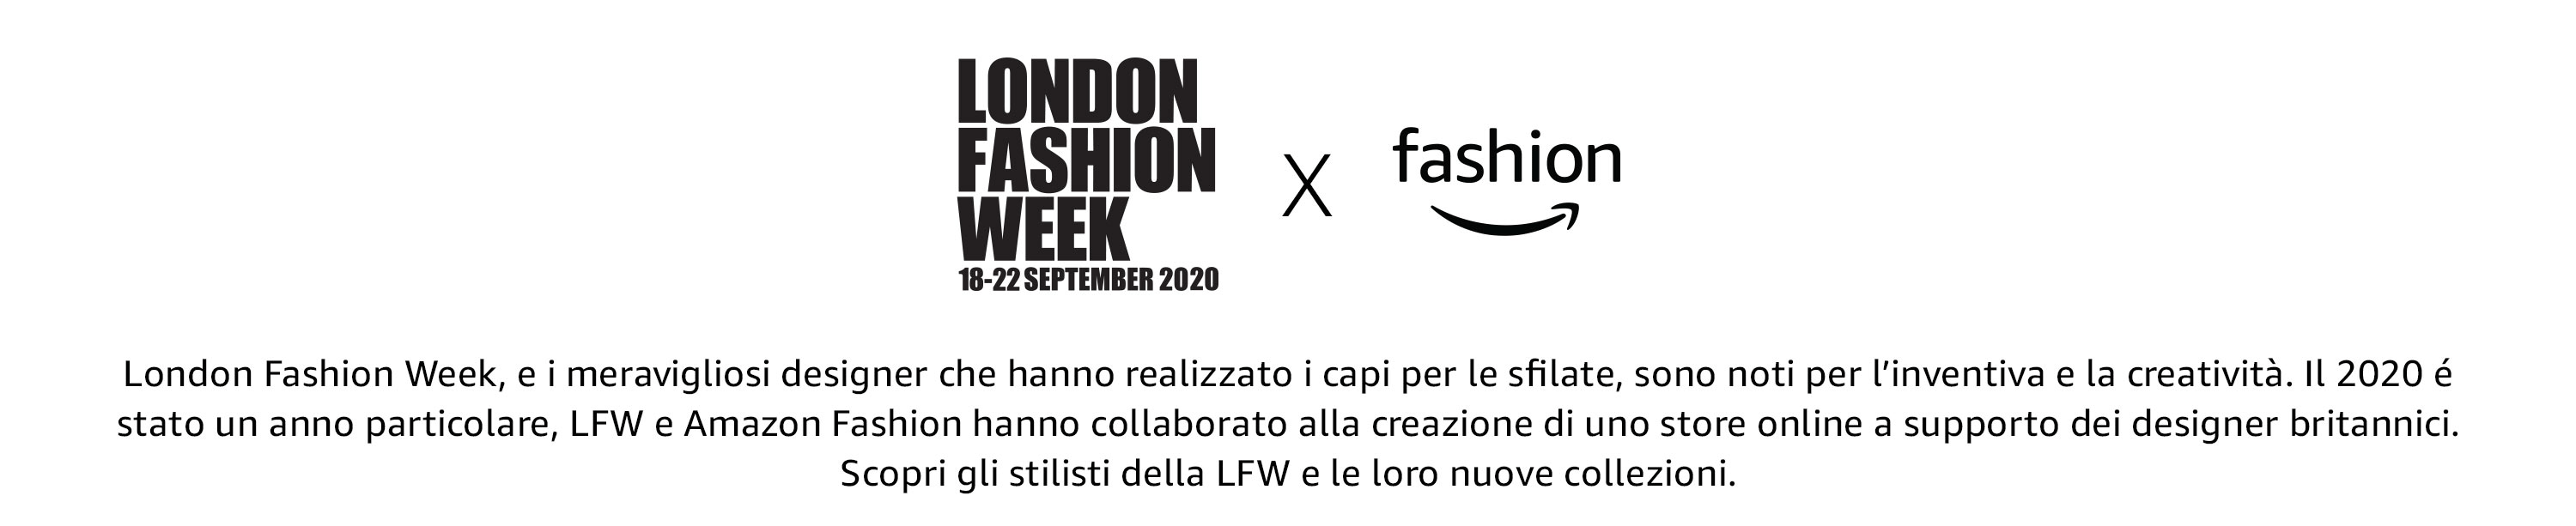 London Fashion Week x Amazon Fashion